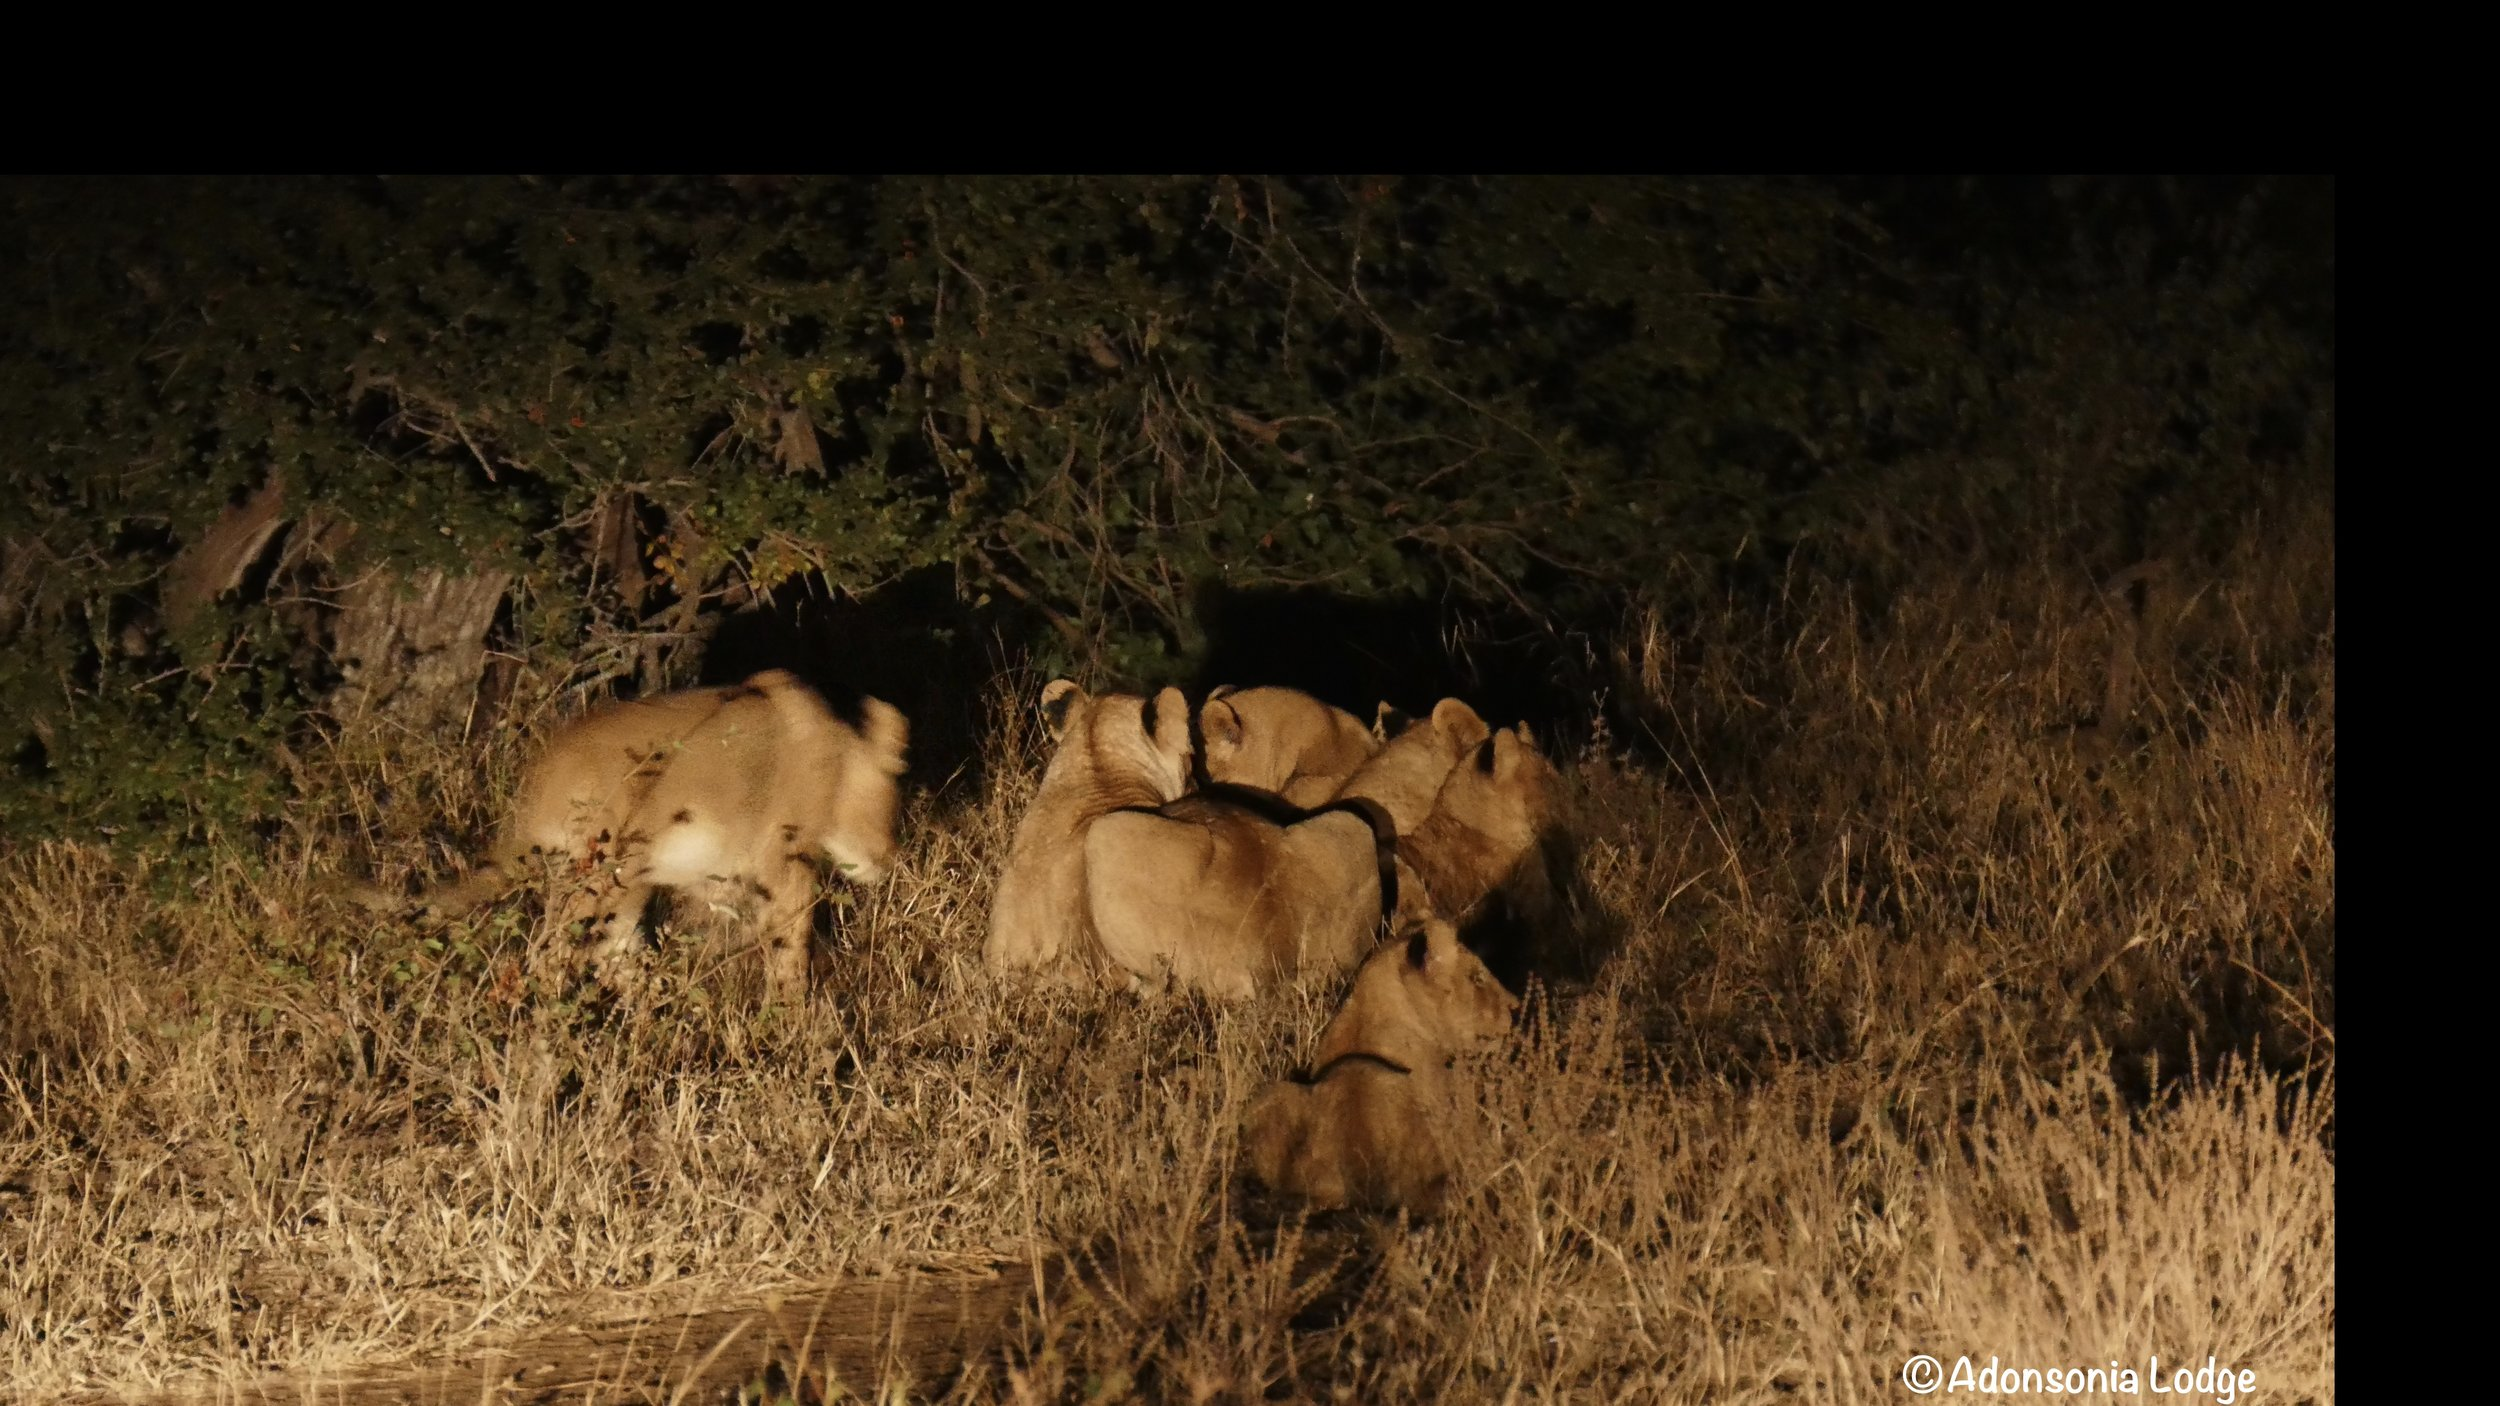 One of the lionesses with her cubs